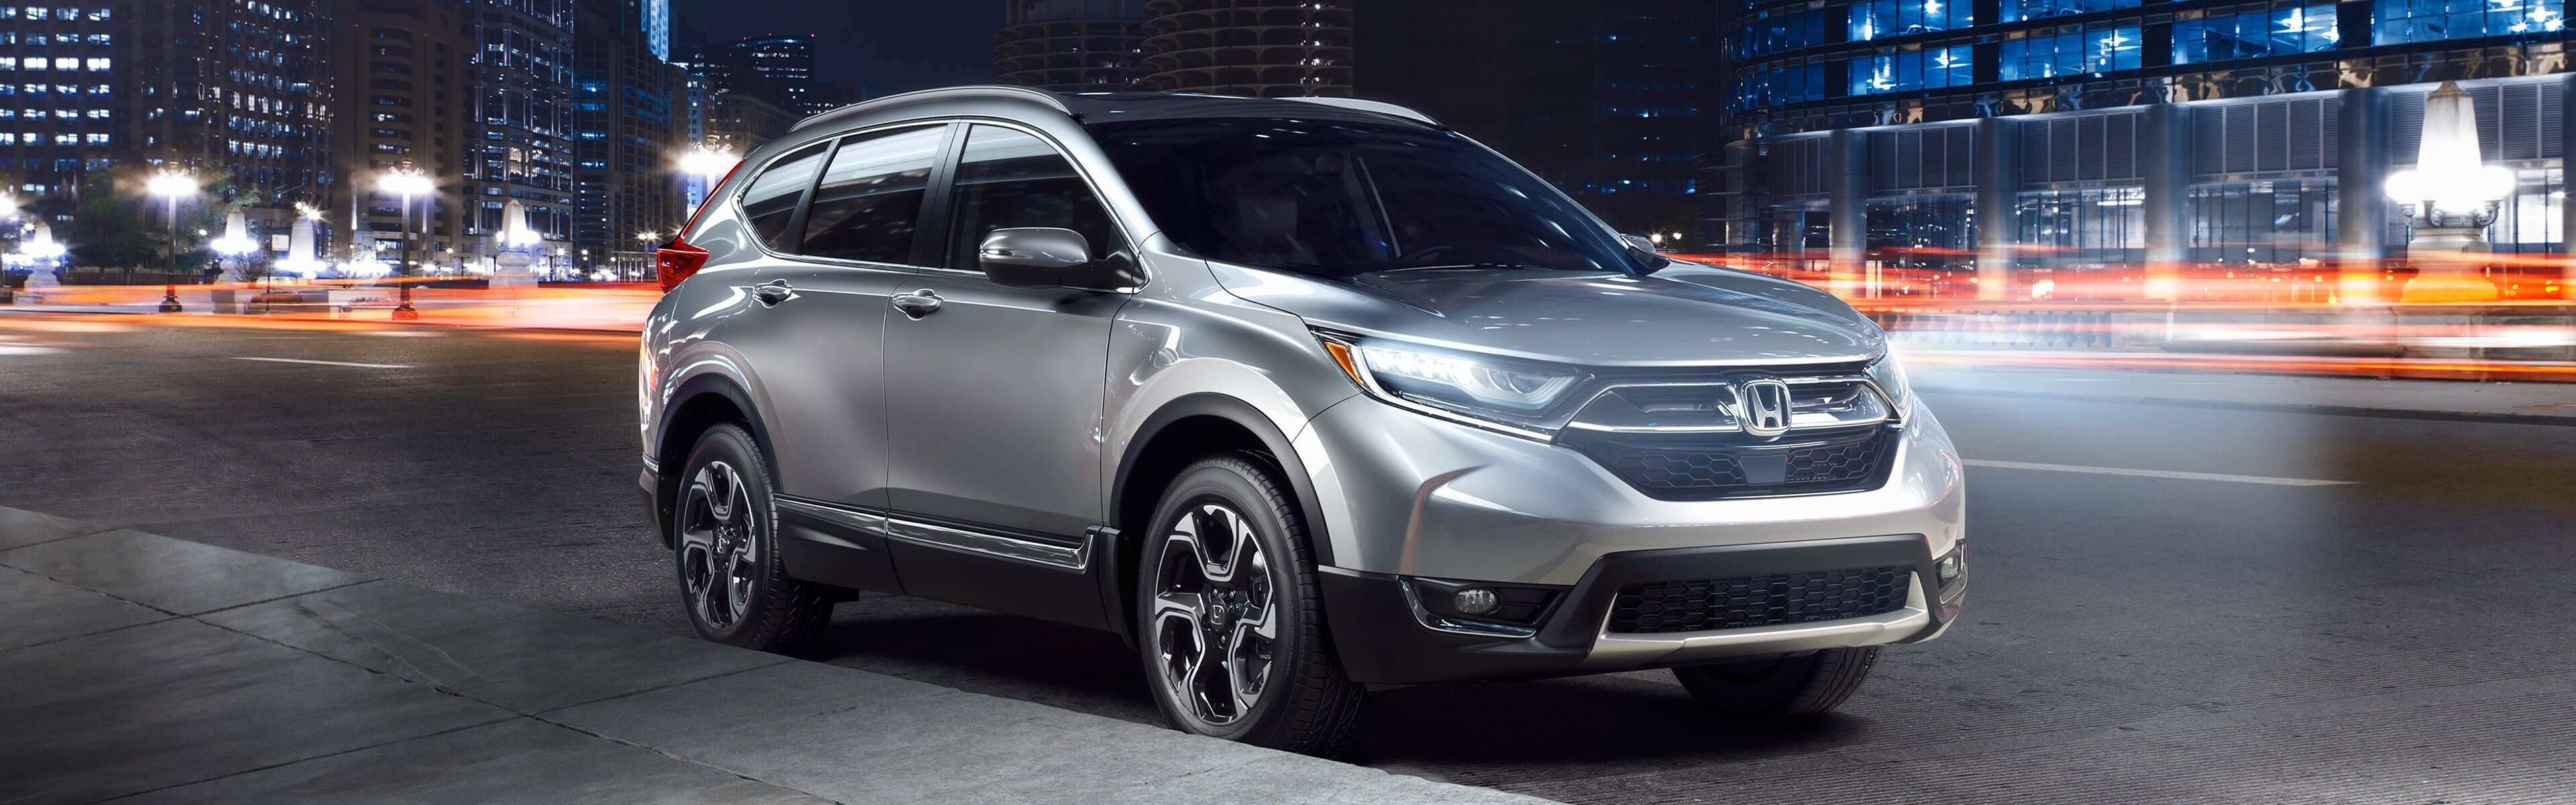 11 New The Honda Hrv 2019 Canada Spy Shoot Images with The Honda Hrv 2019 Canada Spy Shoot